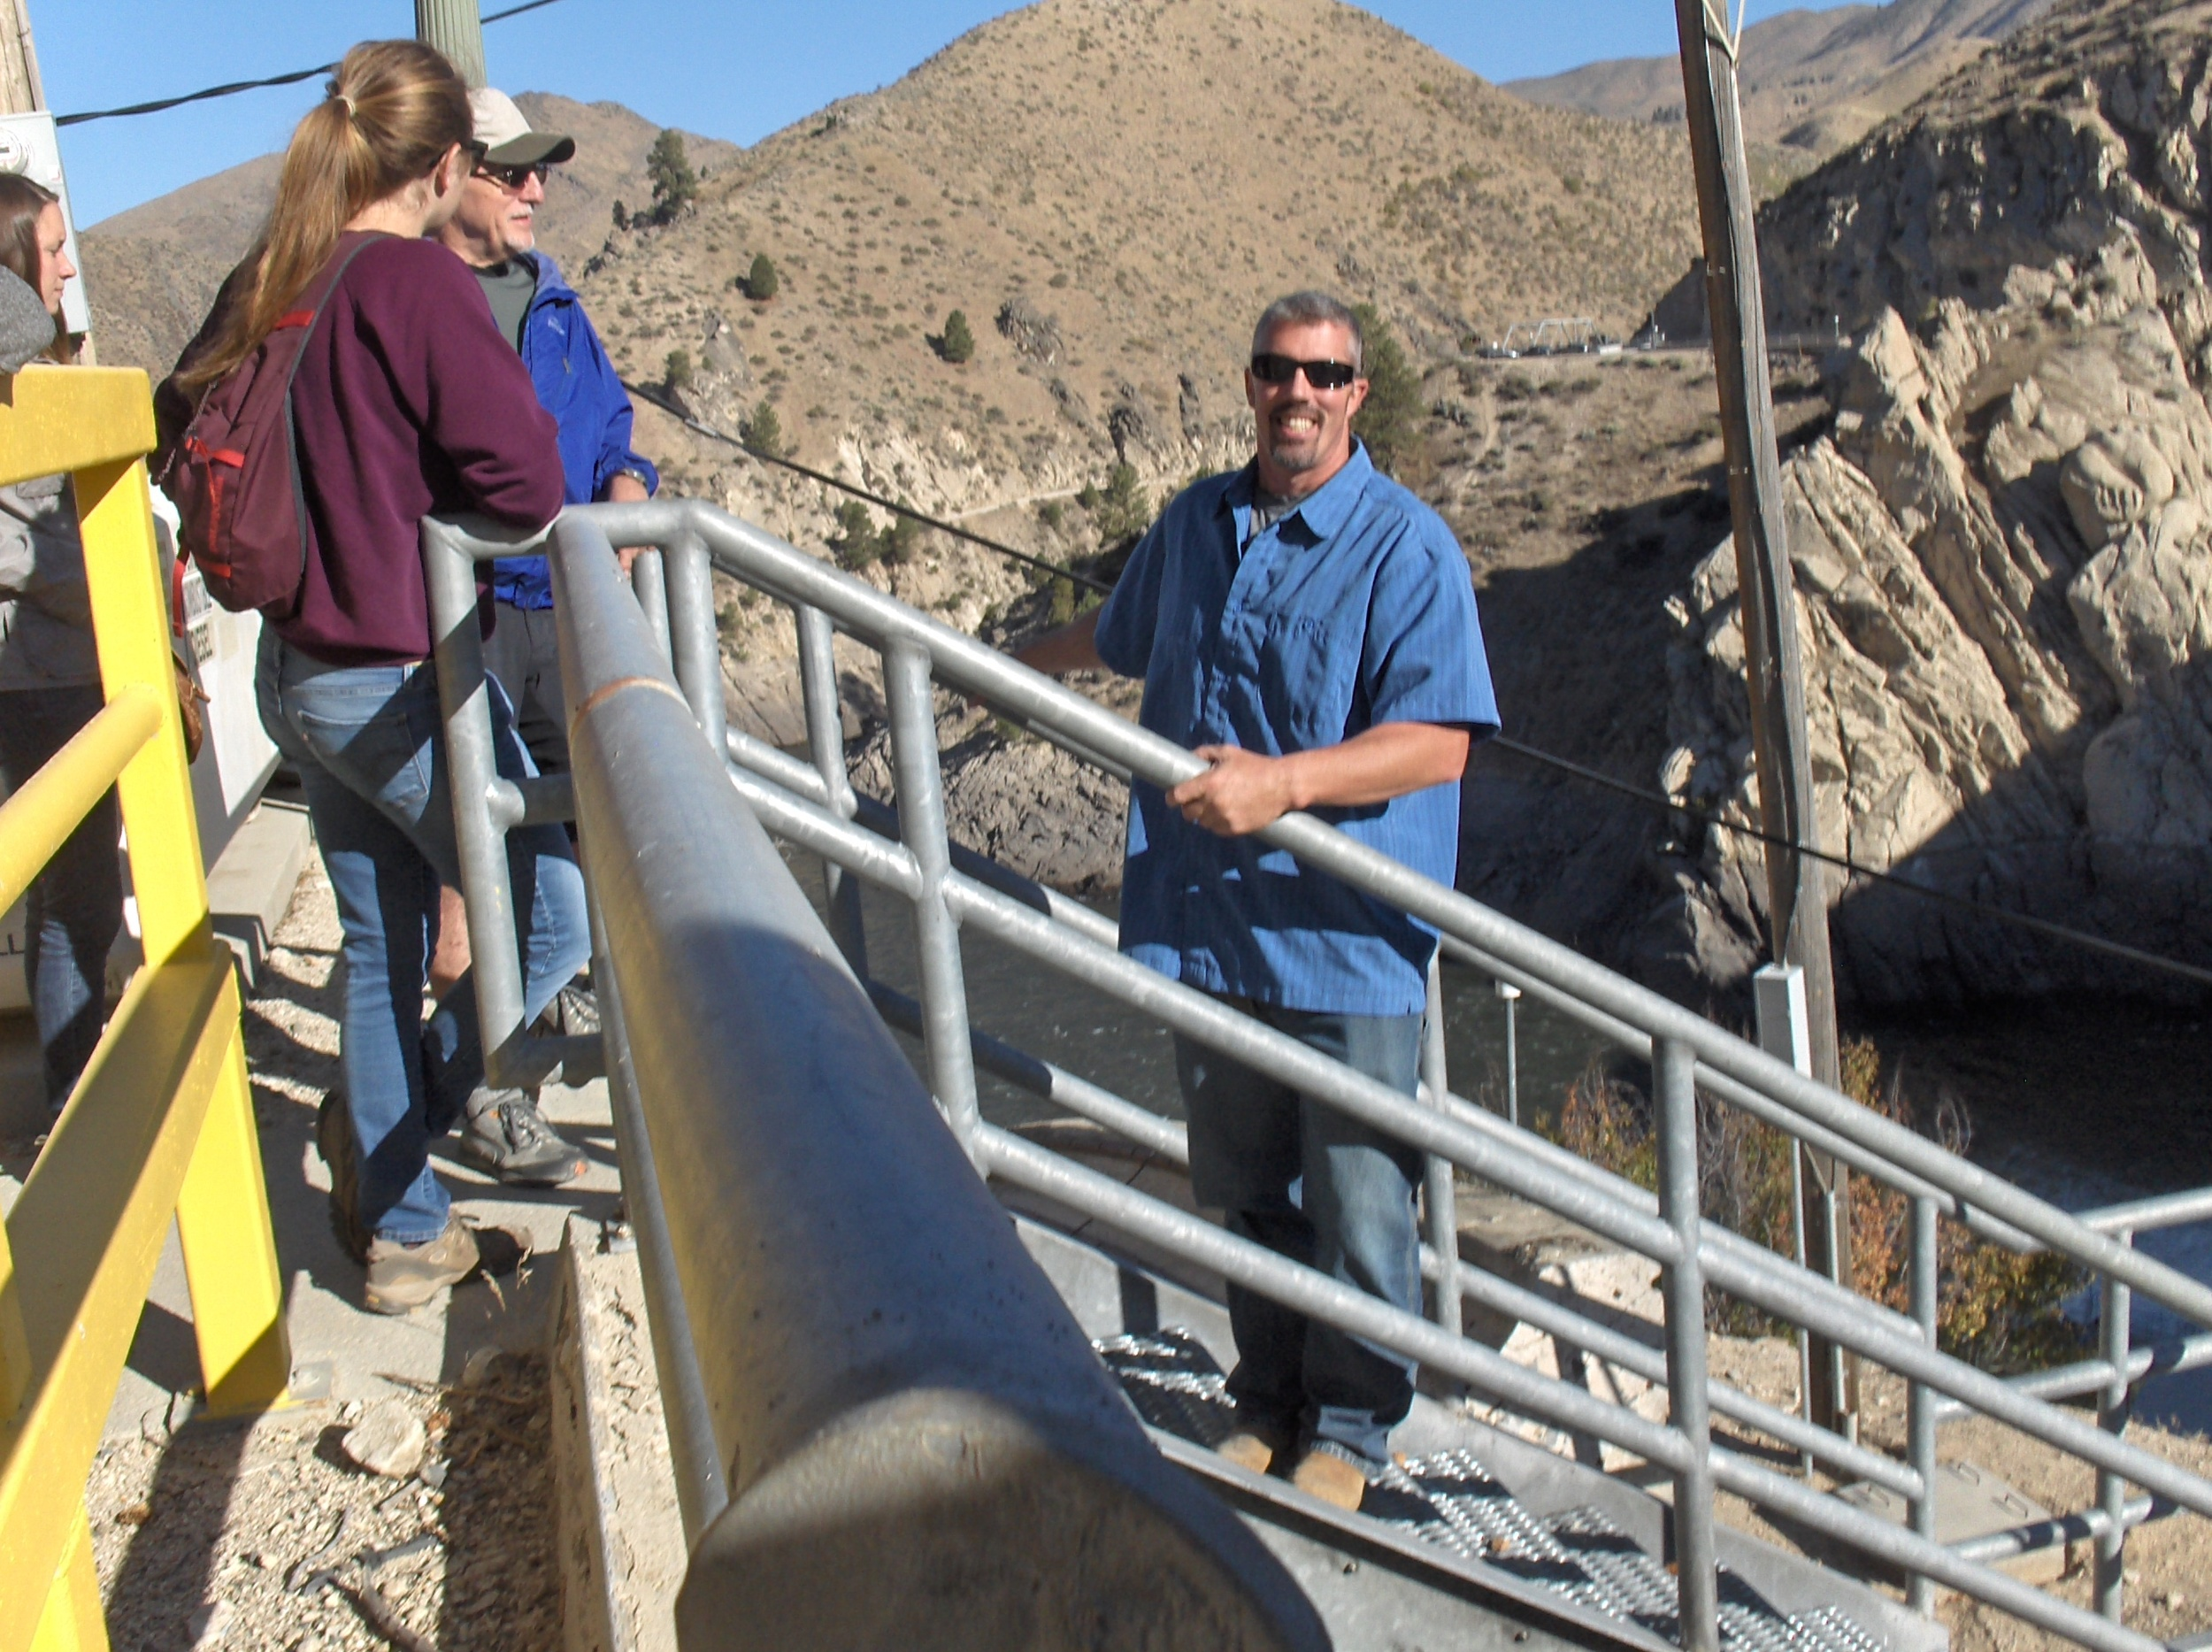 Arrowrock Dam Maintenance Supervisor Michael Anselme, pictured in blue, leads a tour of the dam for 25 IRU members.